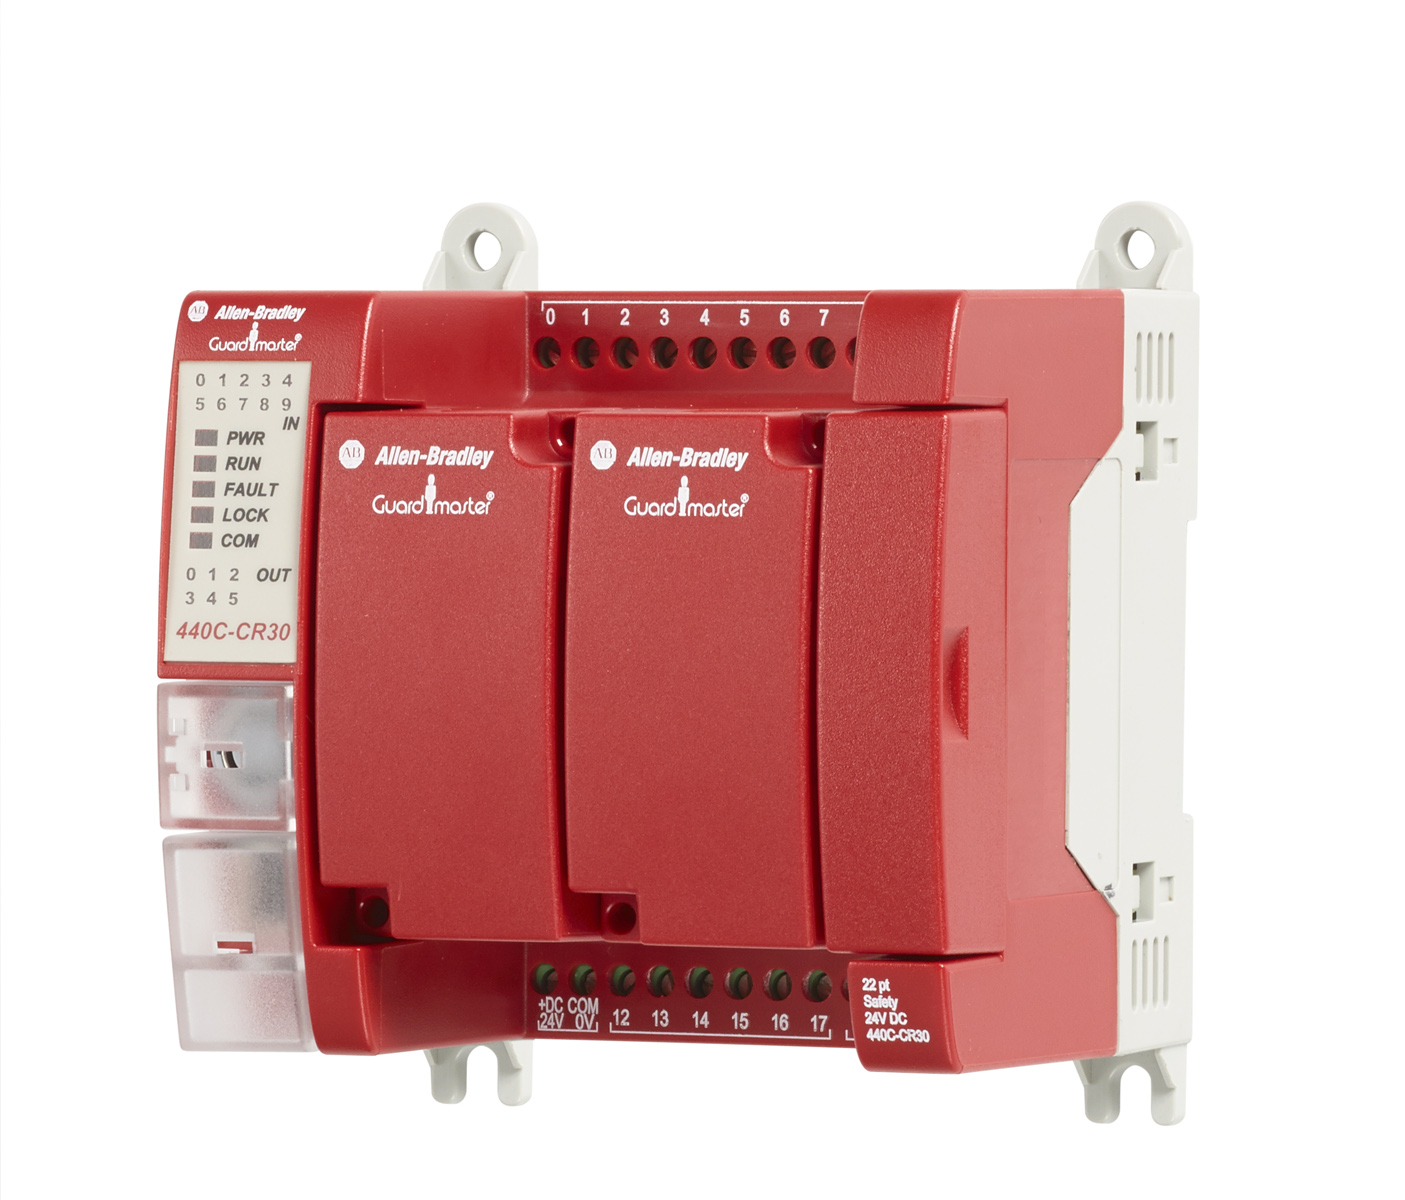 Flexible Relay Solution From Rockwell Automation Simplifies Safety